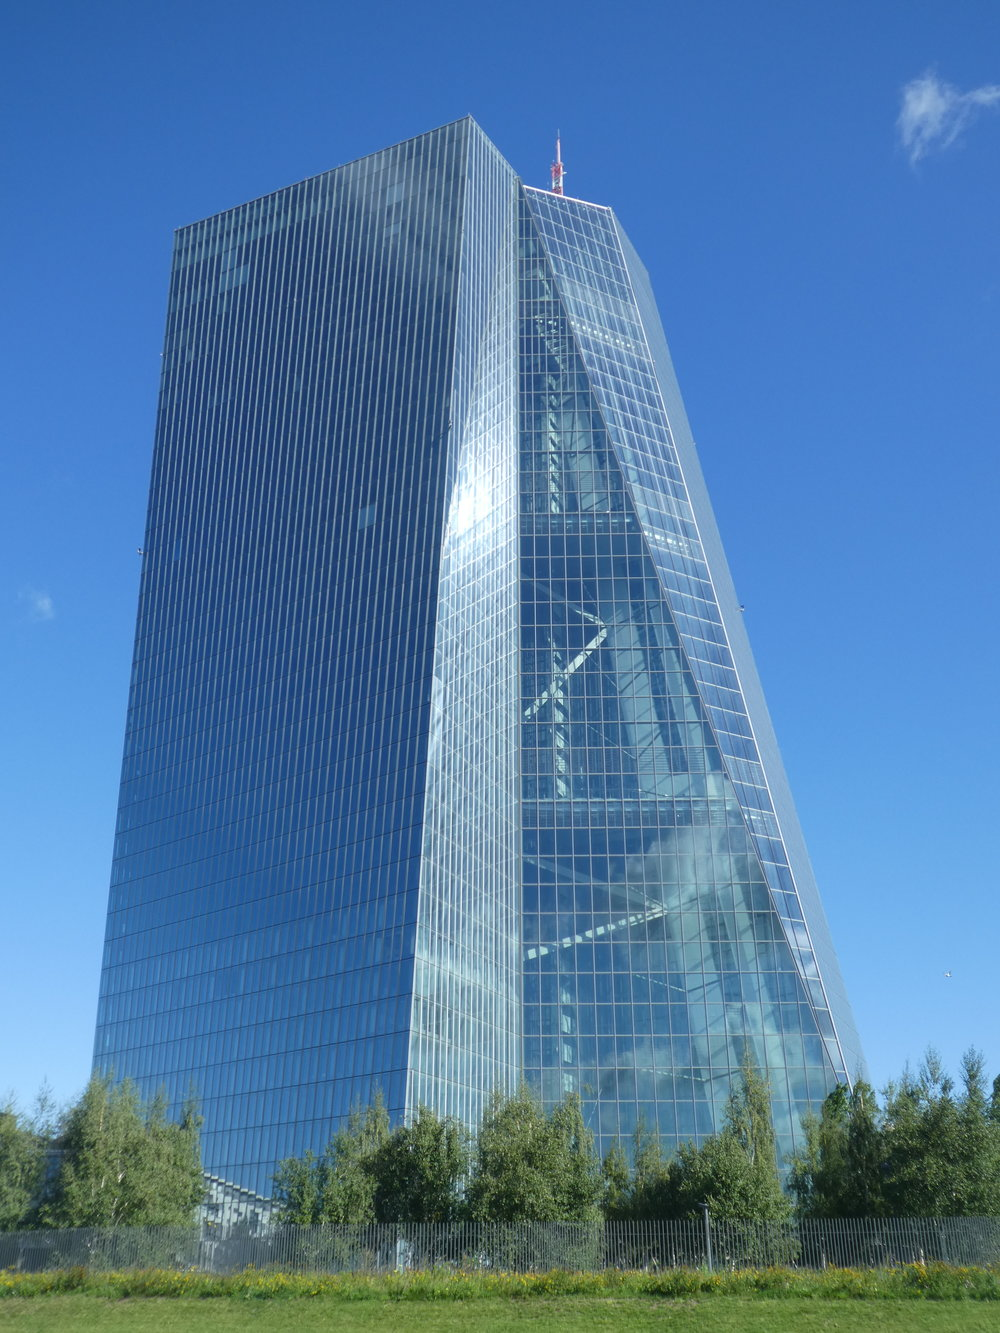 The building of the European Central Bank seen from the Main river side.